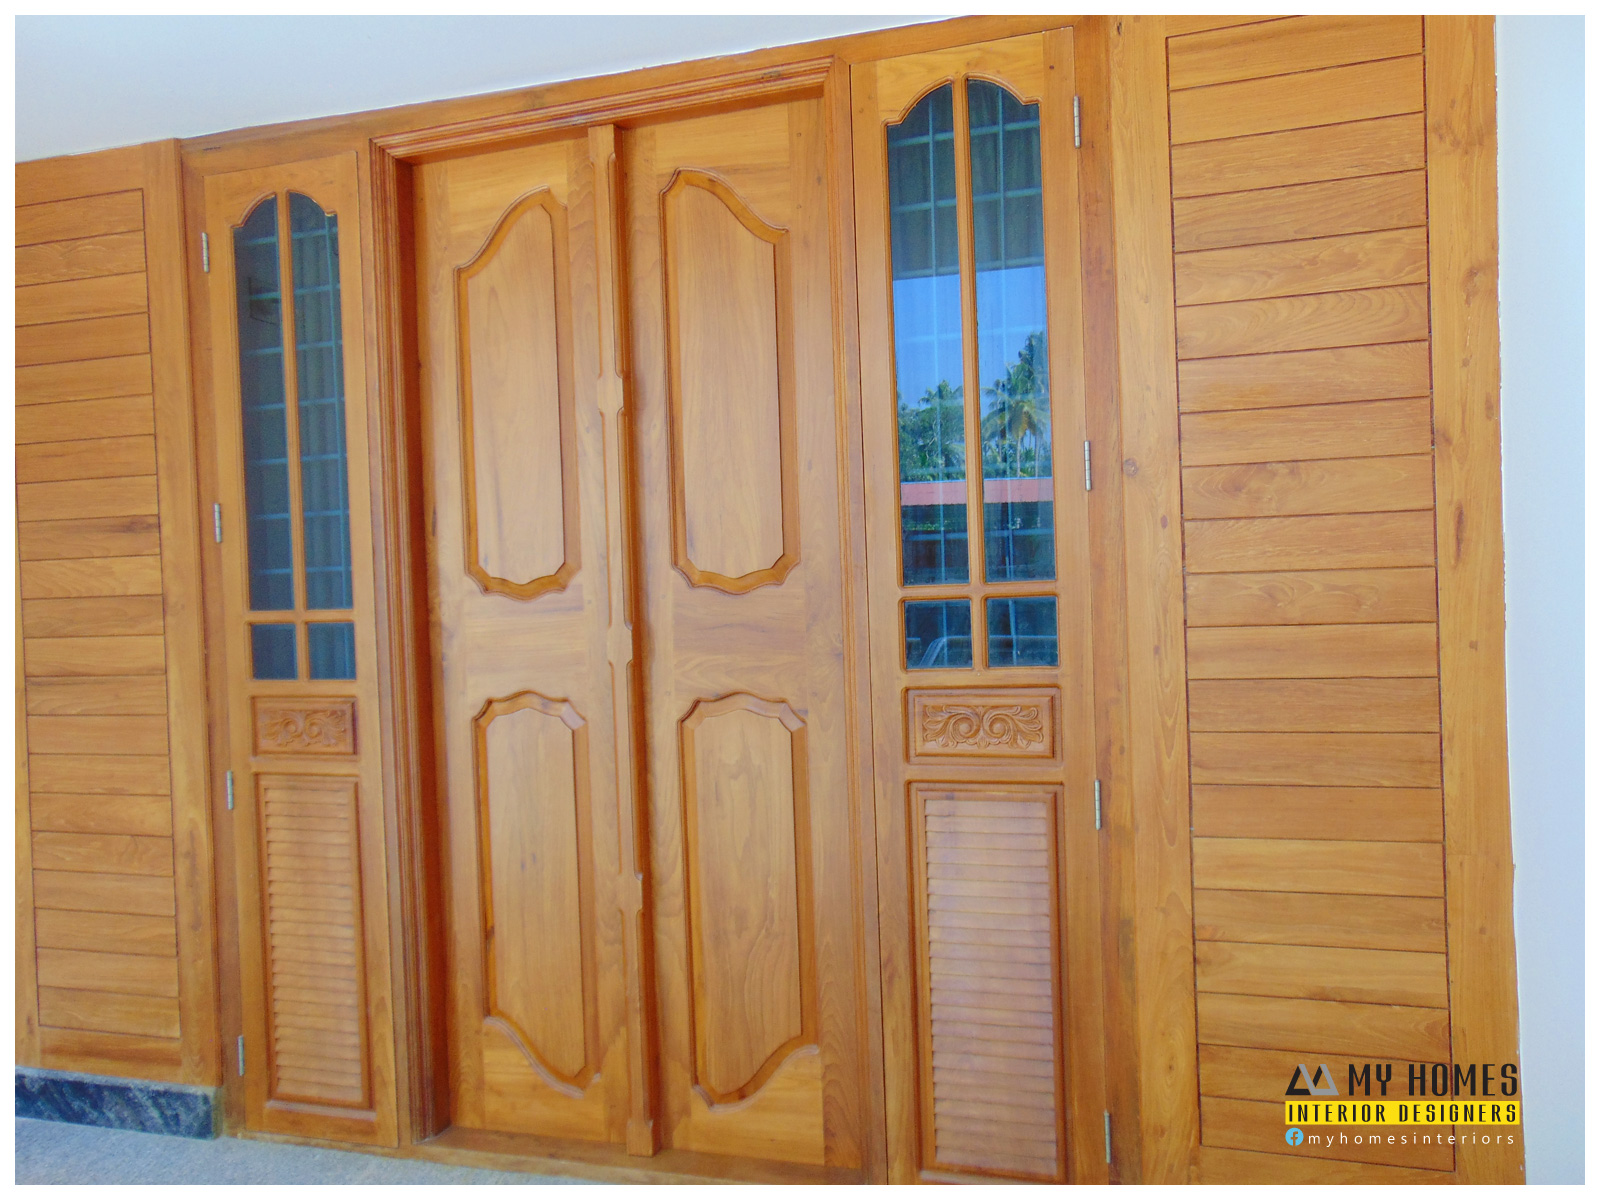 Wooden door style in kerala door designs photosm images for Wood door design 2016